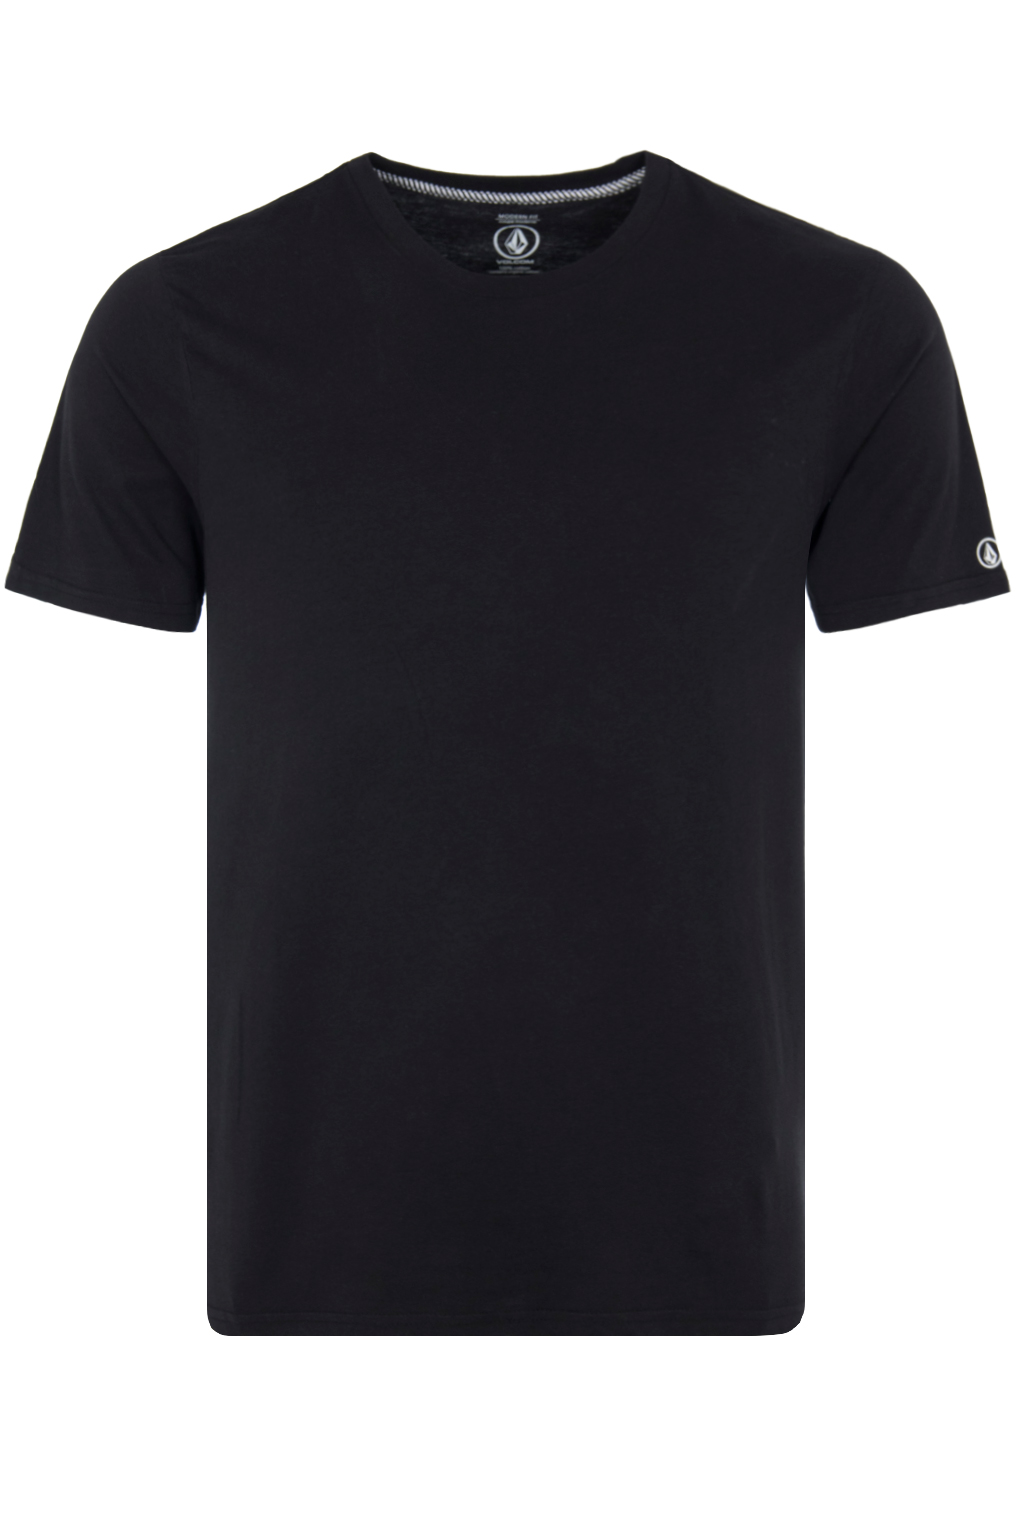 VOLCOM SOLID S/S TEE blk A5031807